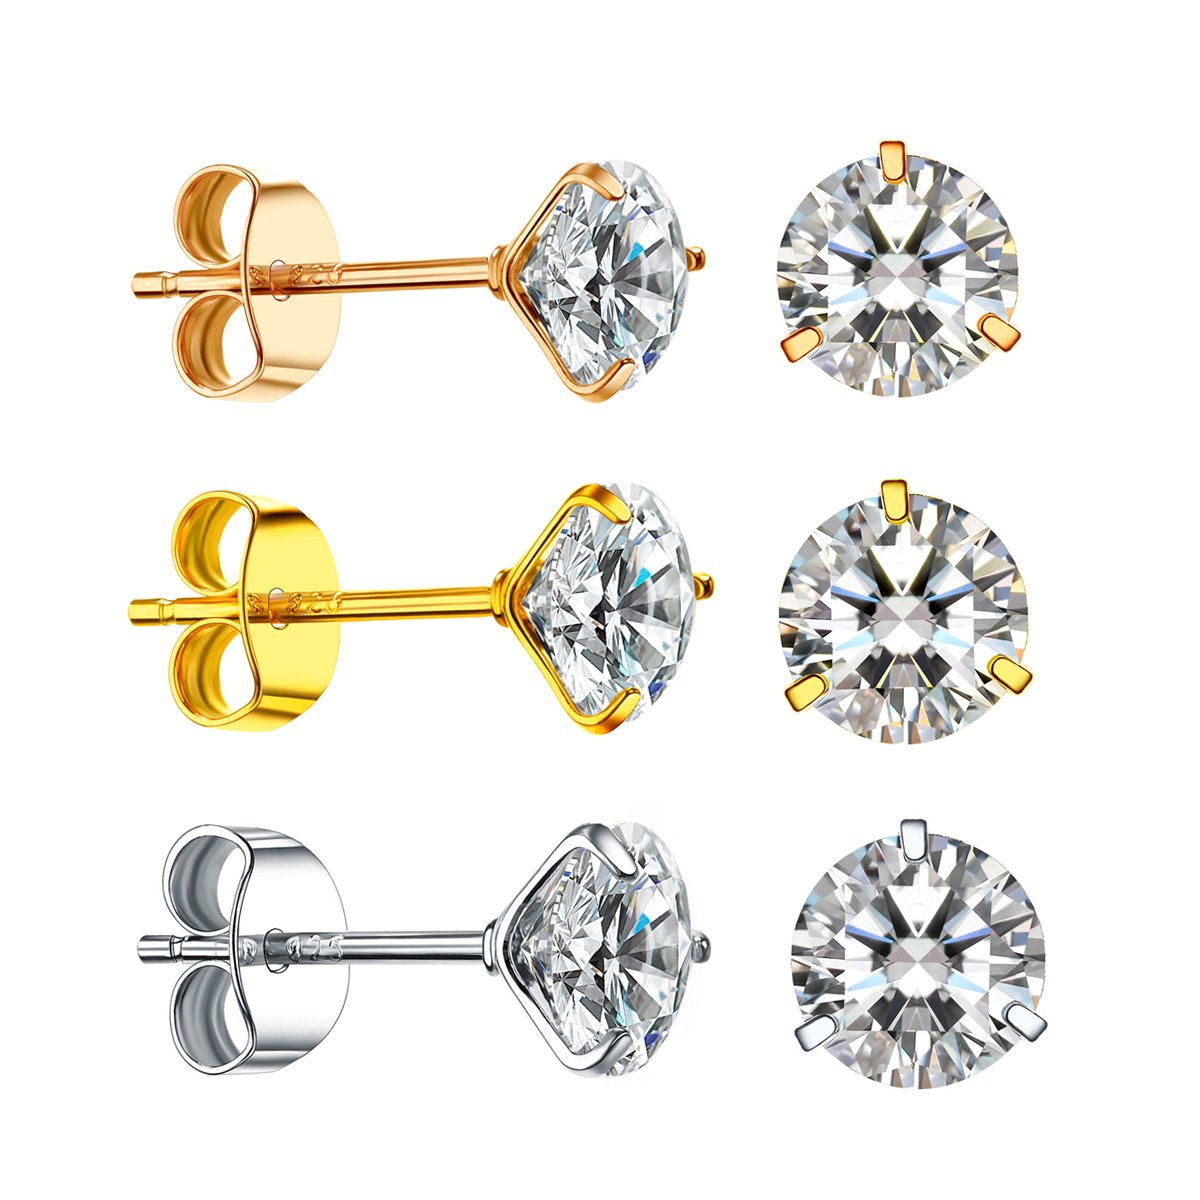 Women's 18K Gold Plated CZ Stud Earrings Man Made Diamond Round Crystal Cubic Zirconia Sterling Silver Ear Stud Set (Rose gold/Yellow gold/Sliver 3colors Pairs)